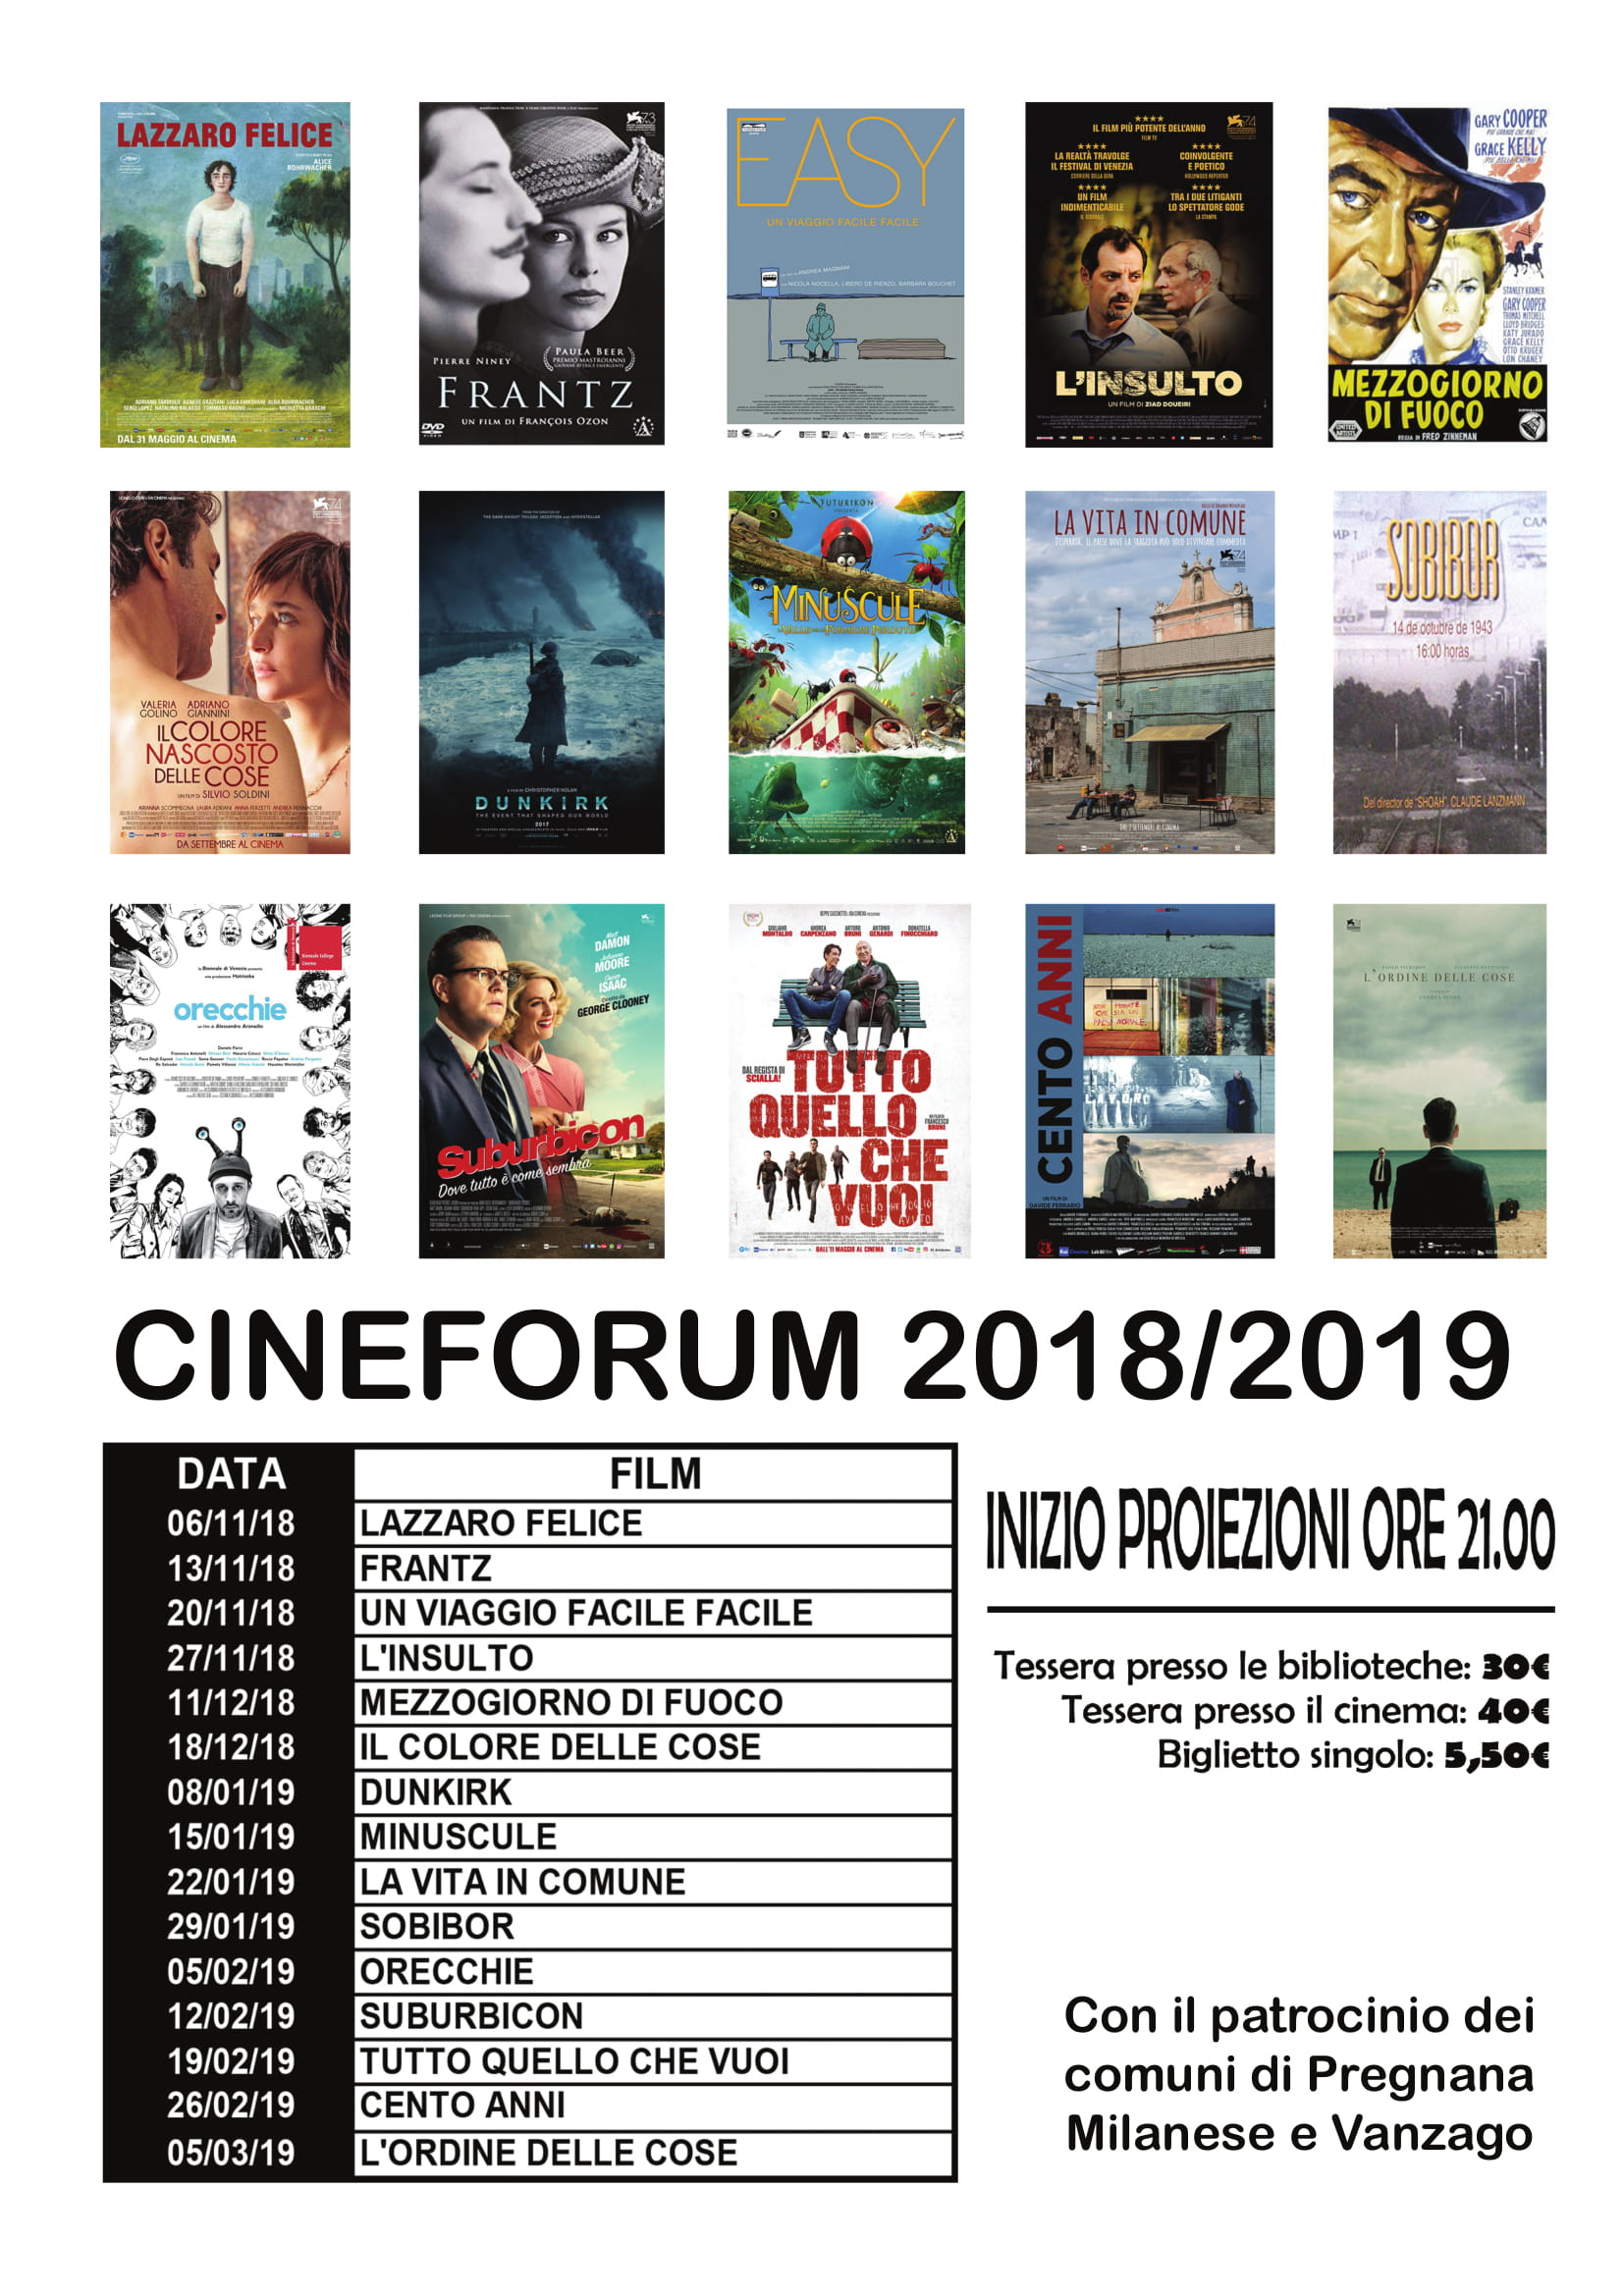 Cineforum 18 19